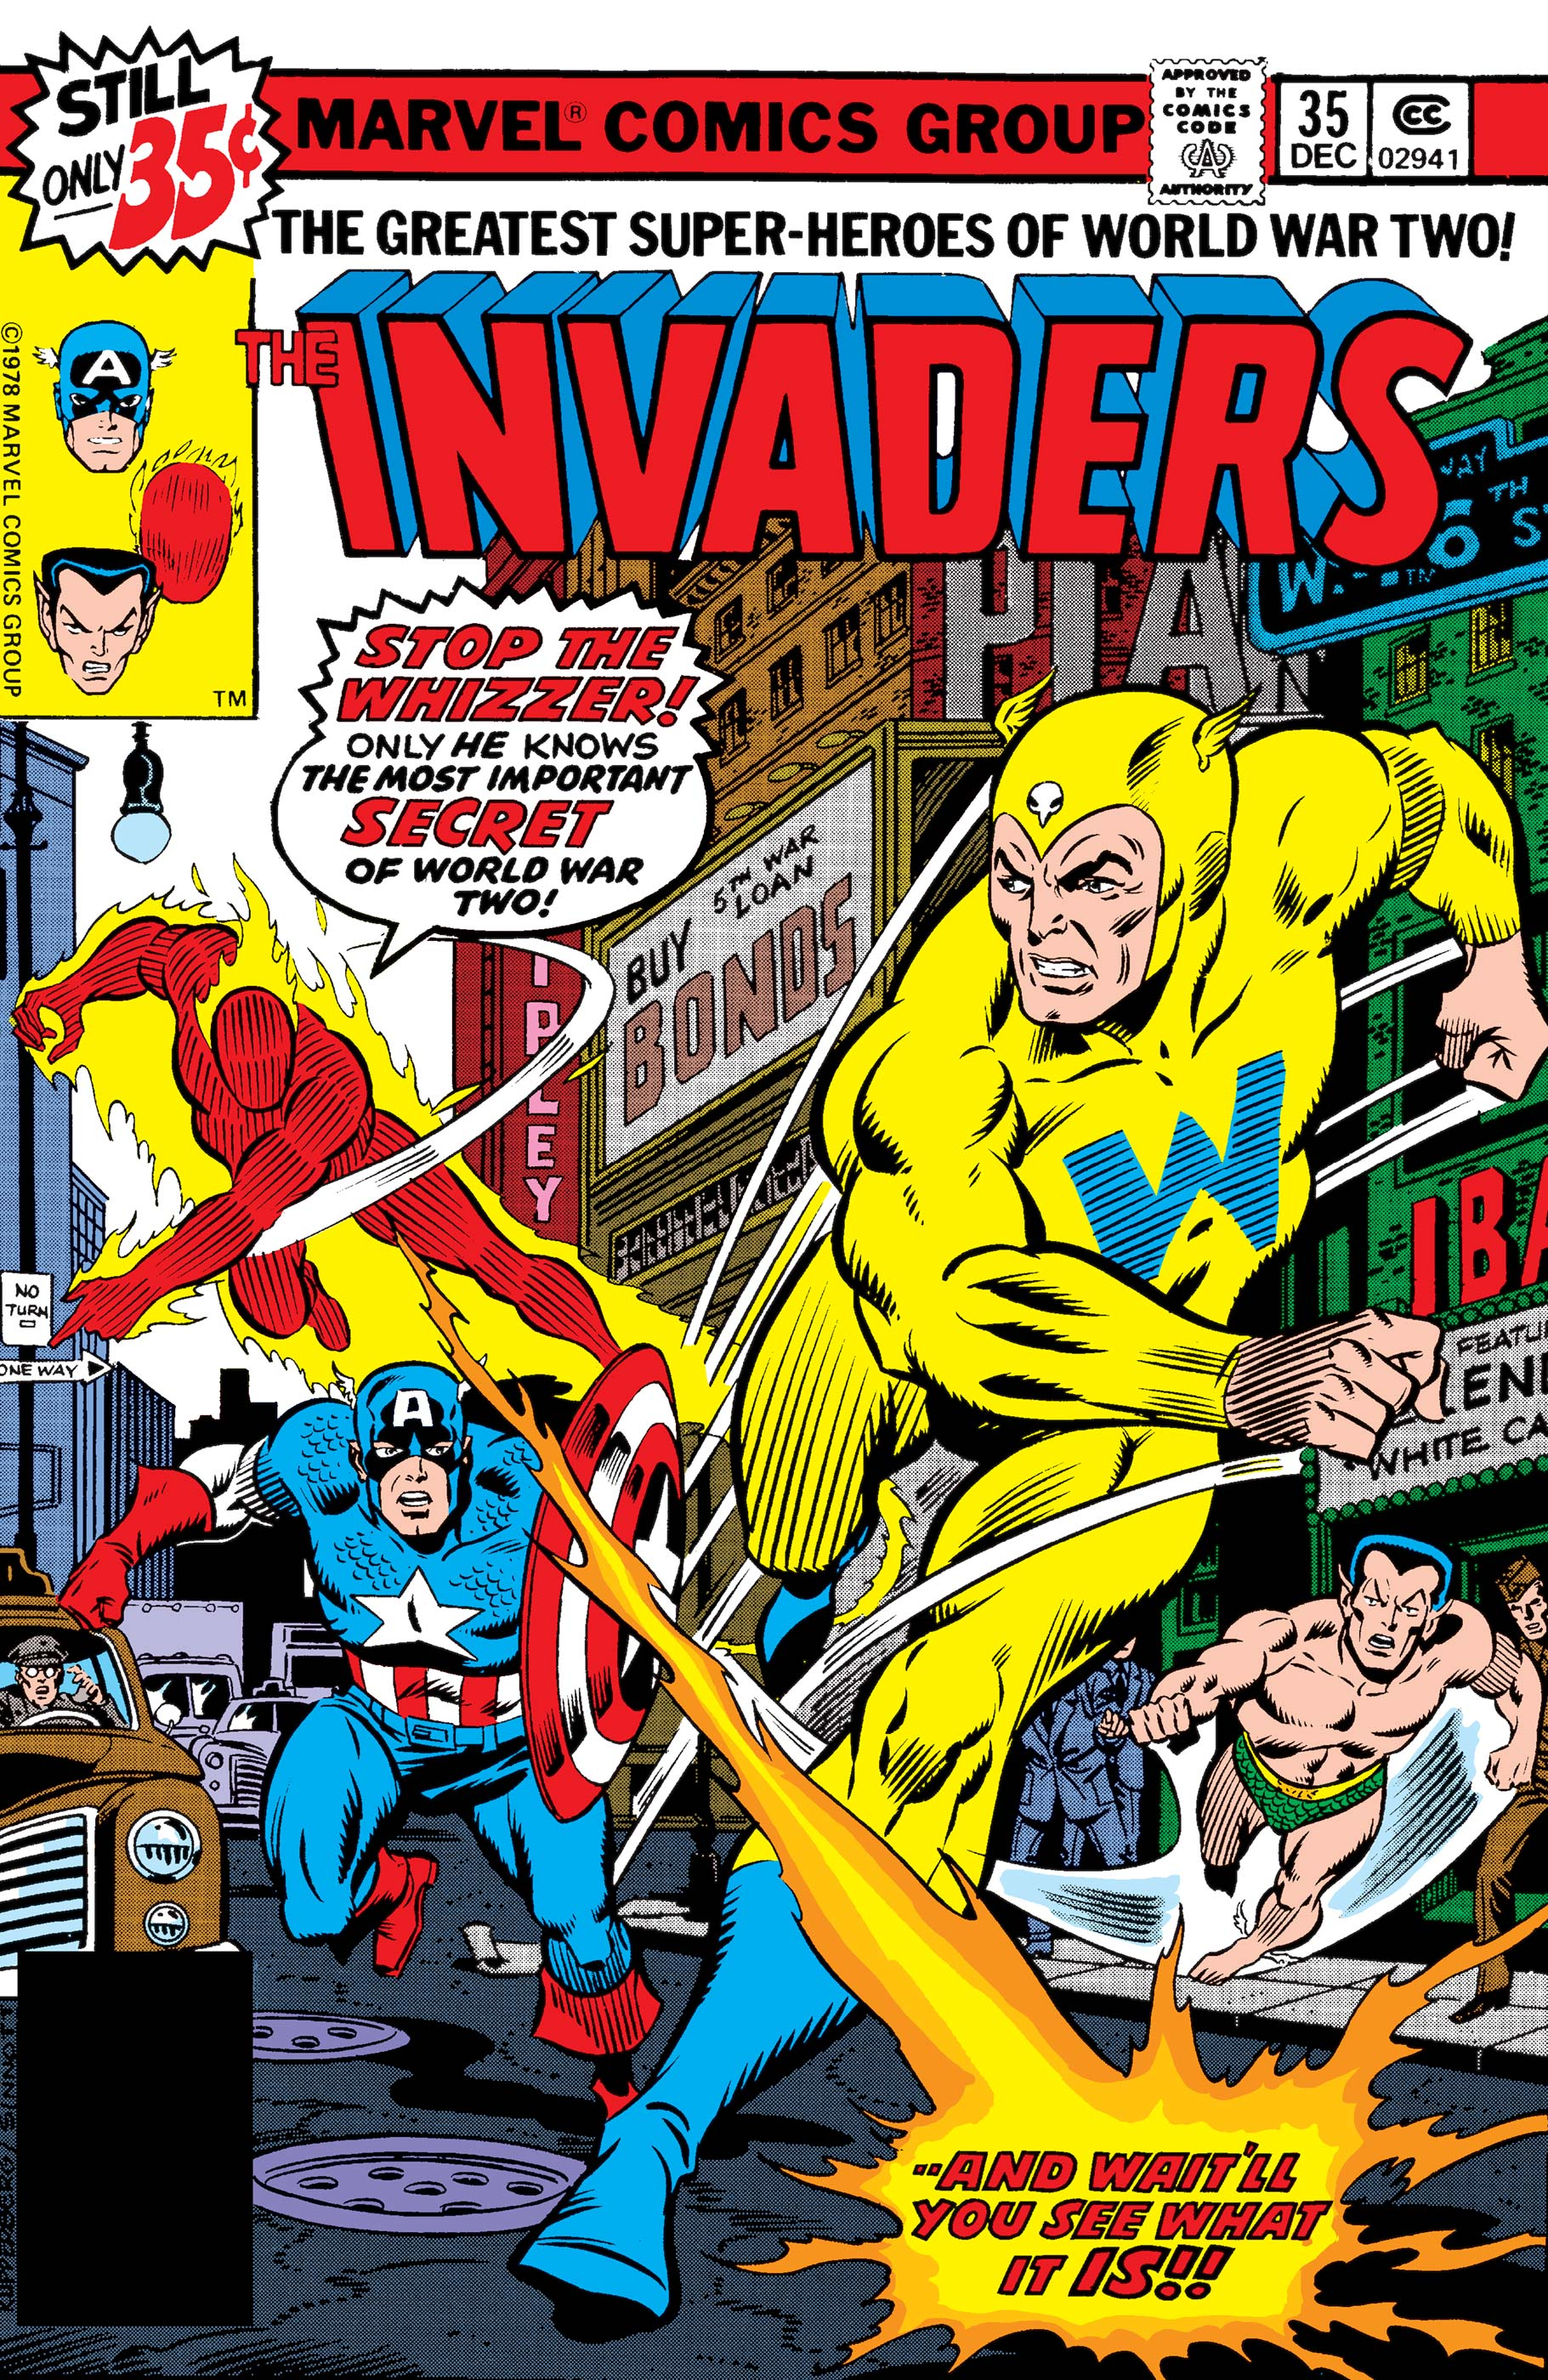 Invaders (1975) #35